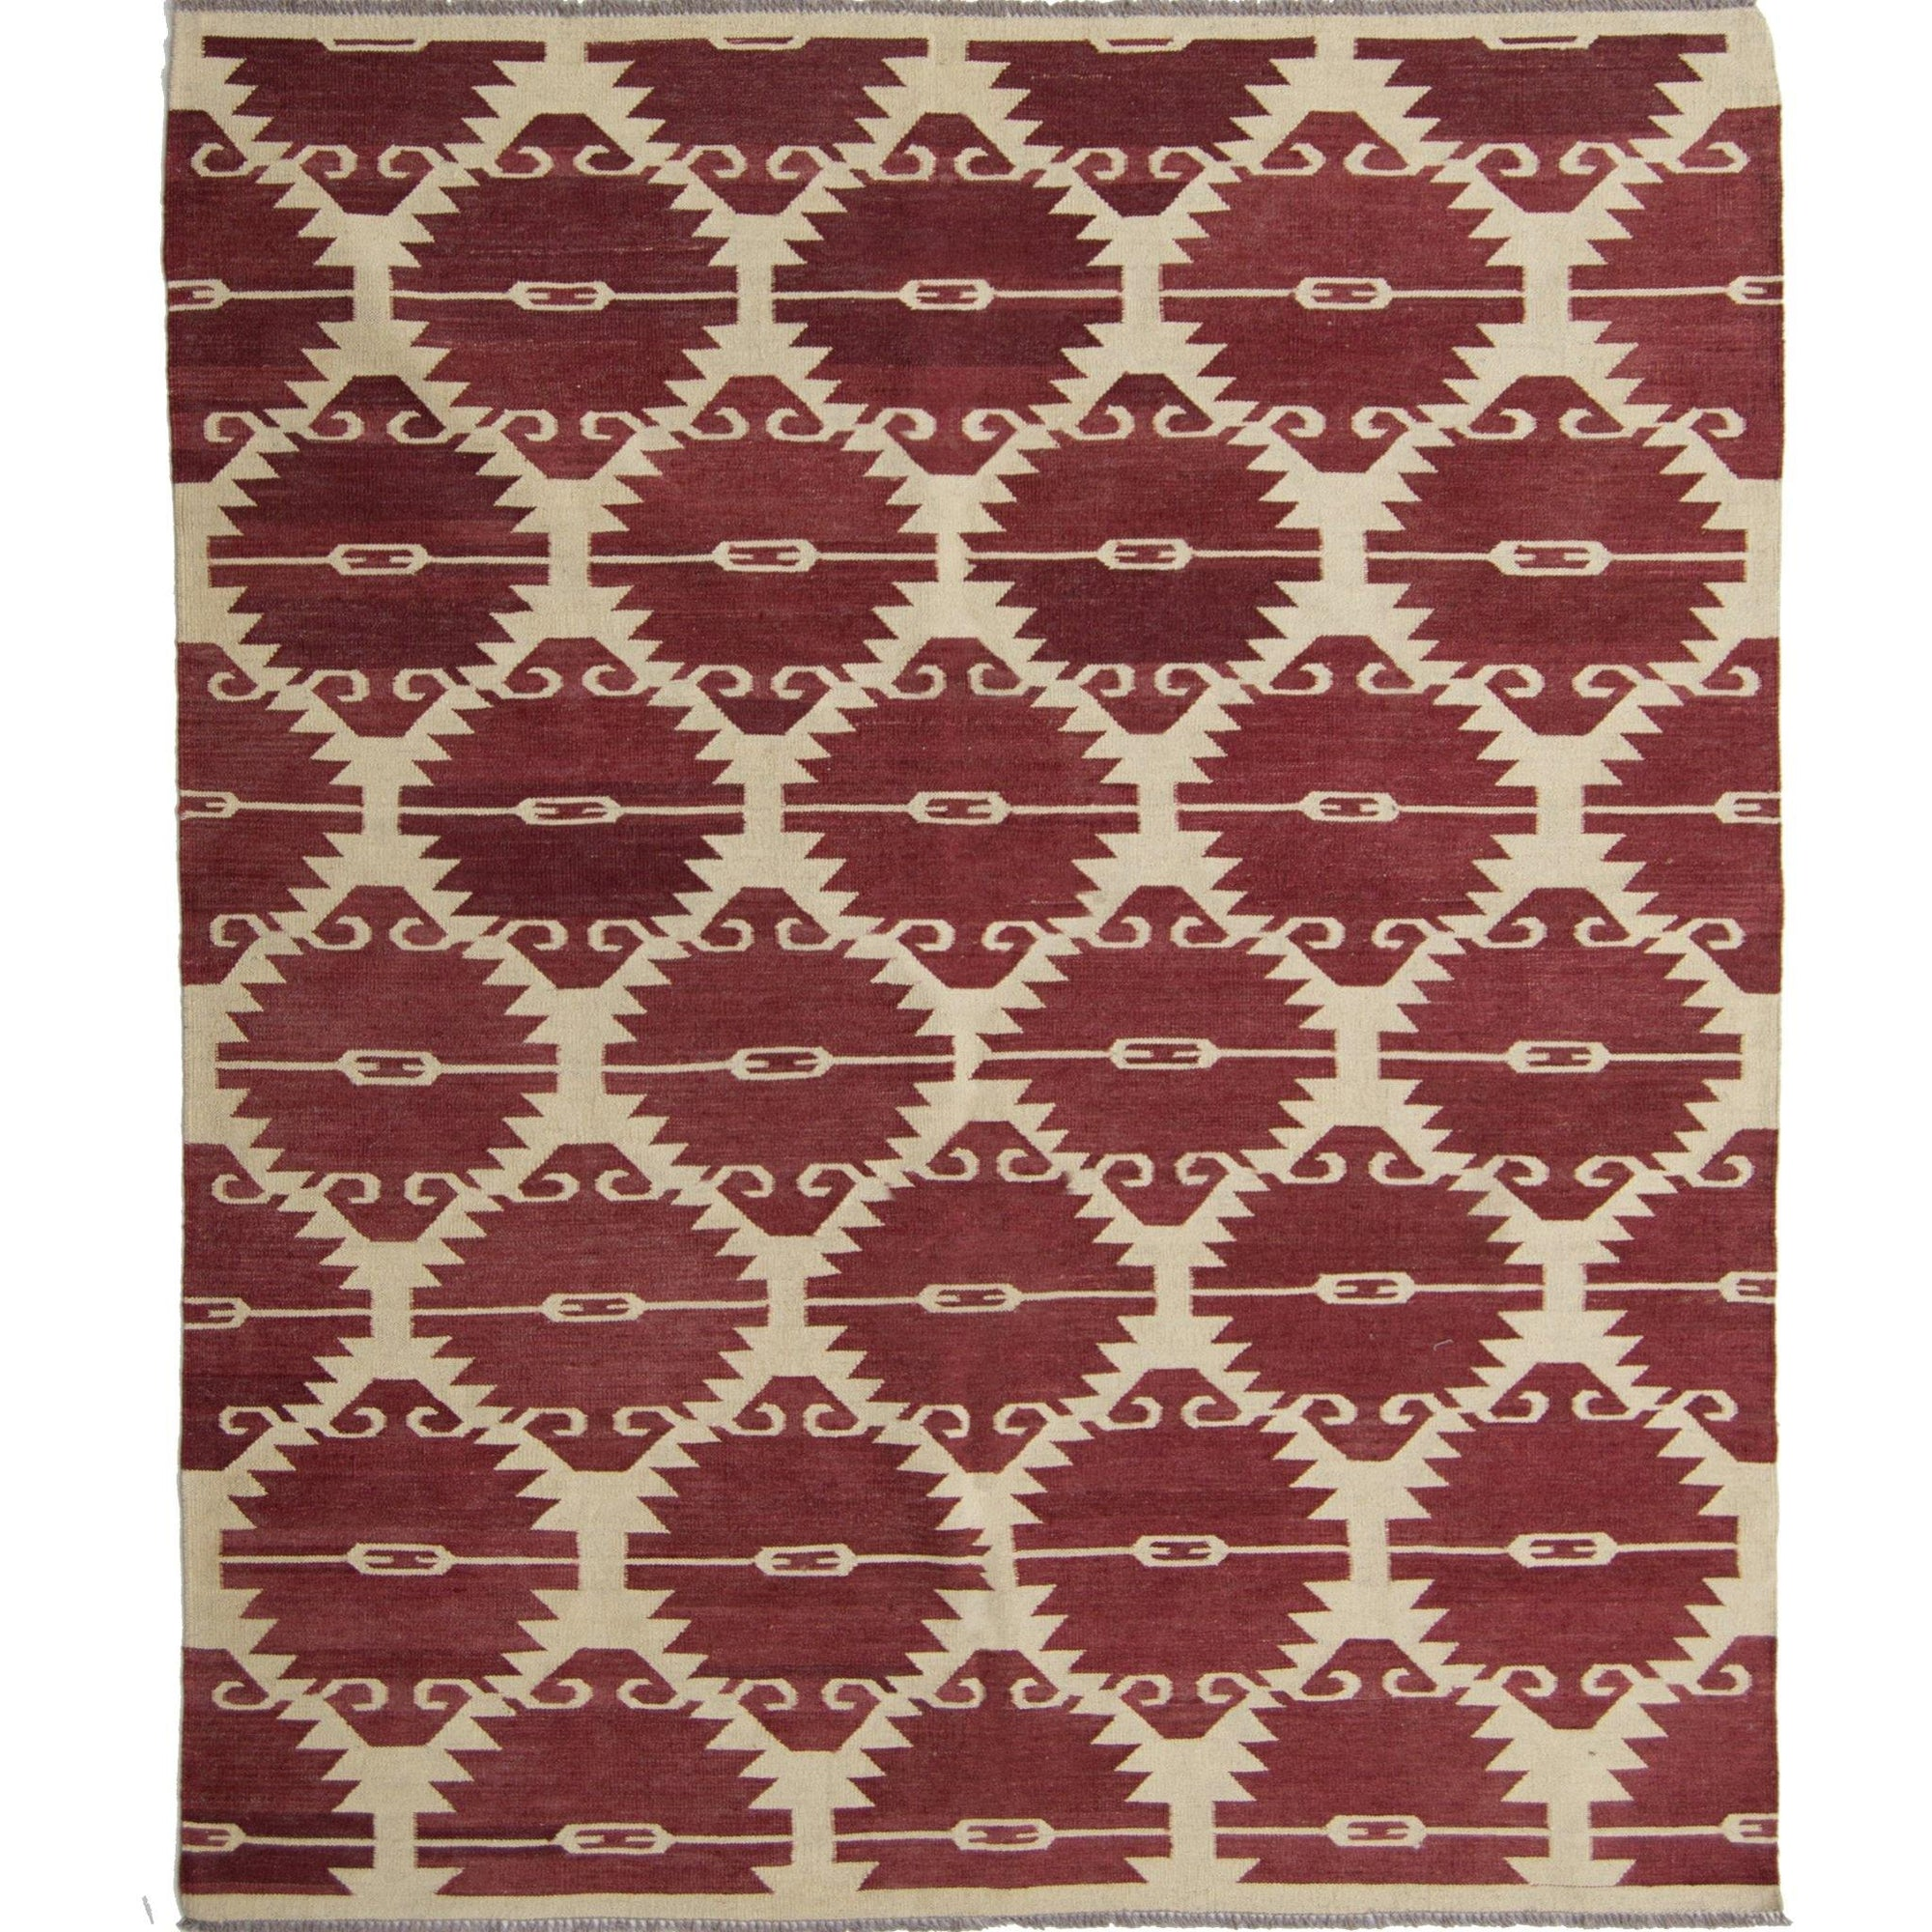 Modern Hand-woven 100% Wool Chobi Kilim Rug 191cm x 238cm Persian-Rug | House-of-Haghi | NewMarket | Auckland | NZ | Handmade Persian Rugs | Hand Knotted Persian Rugs